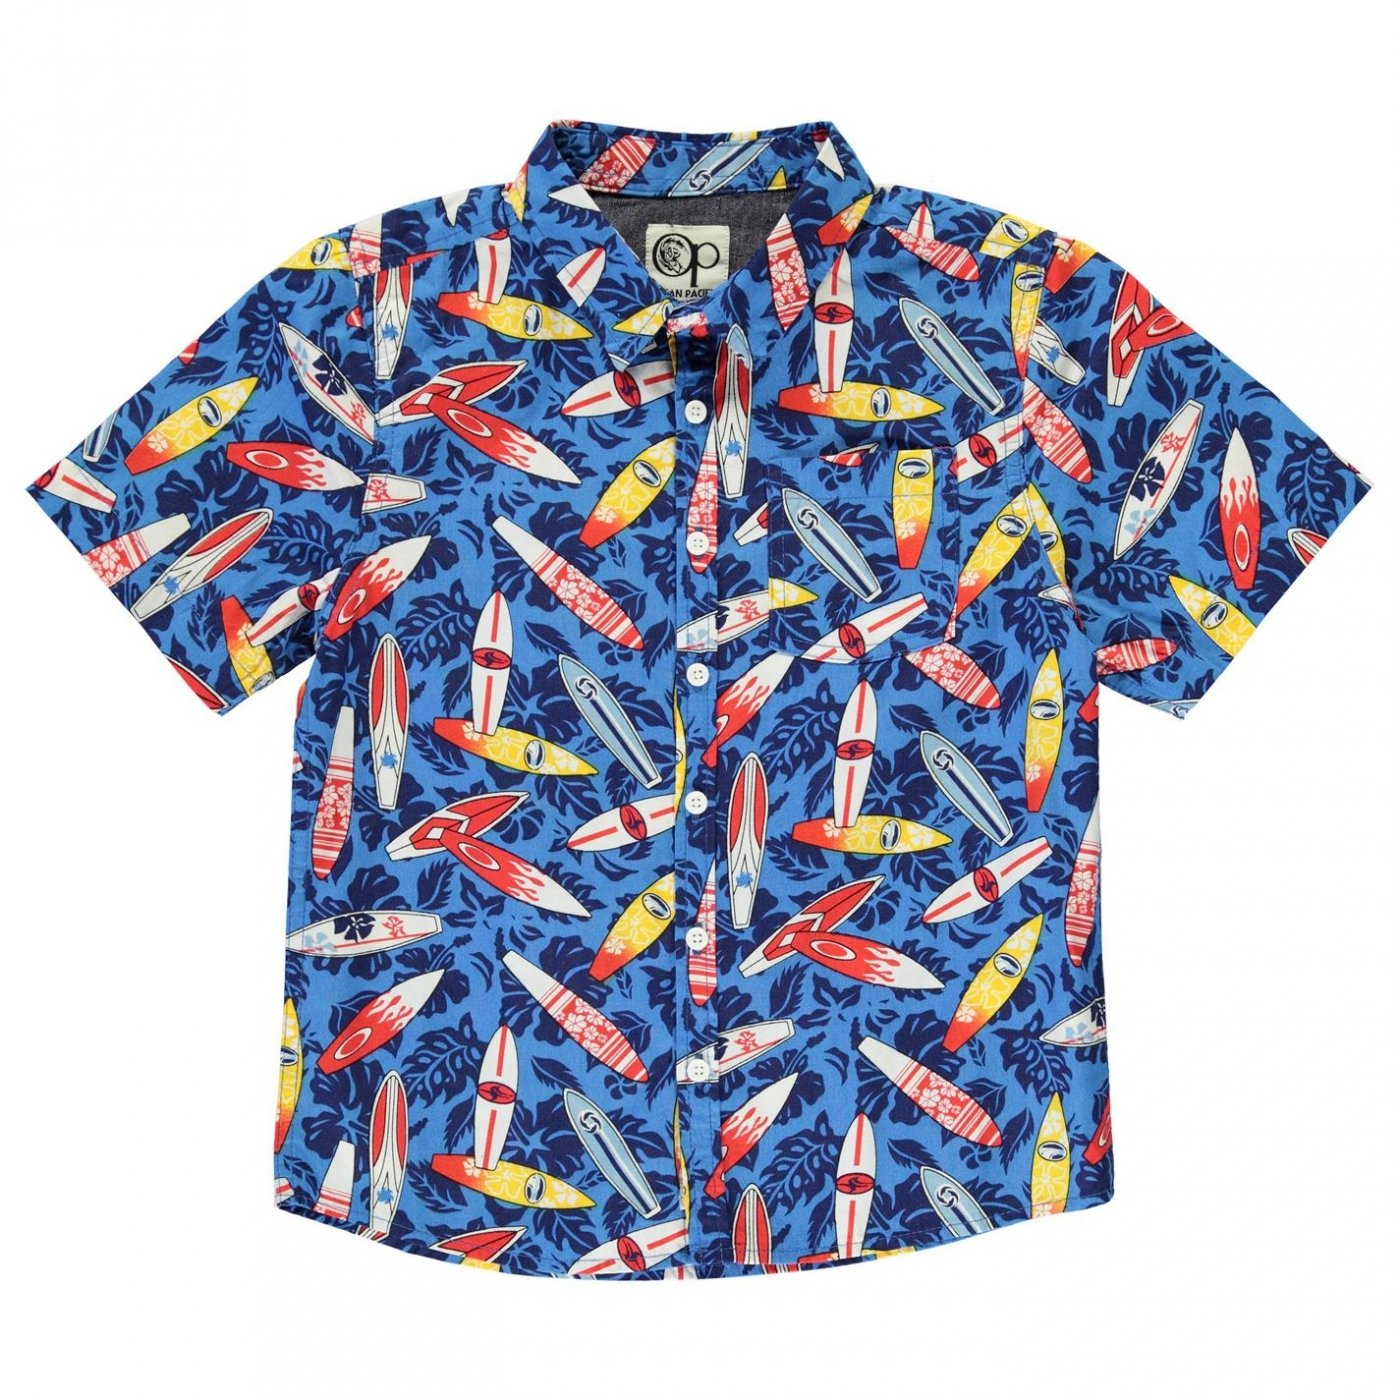 Ocean Pacific Boys All Over Print Shirt - Colour Surfboards